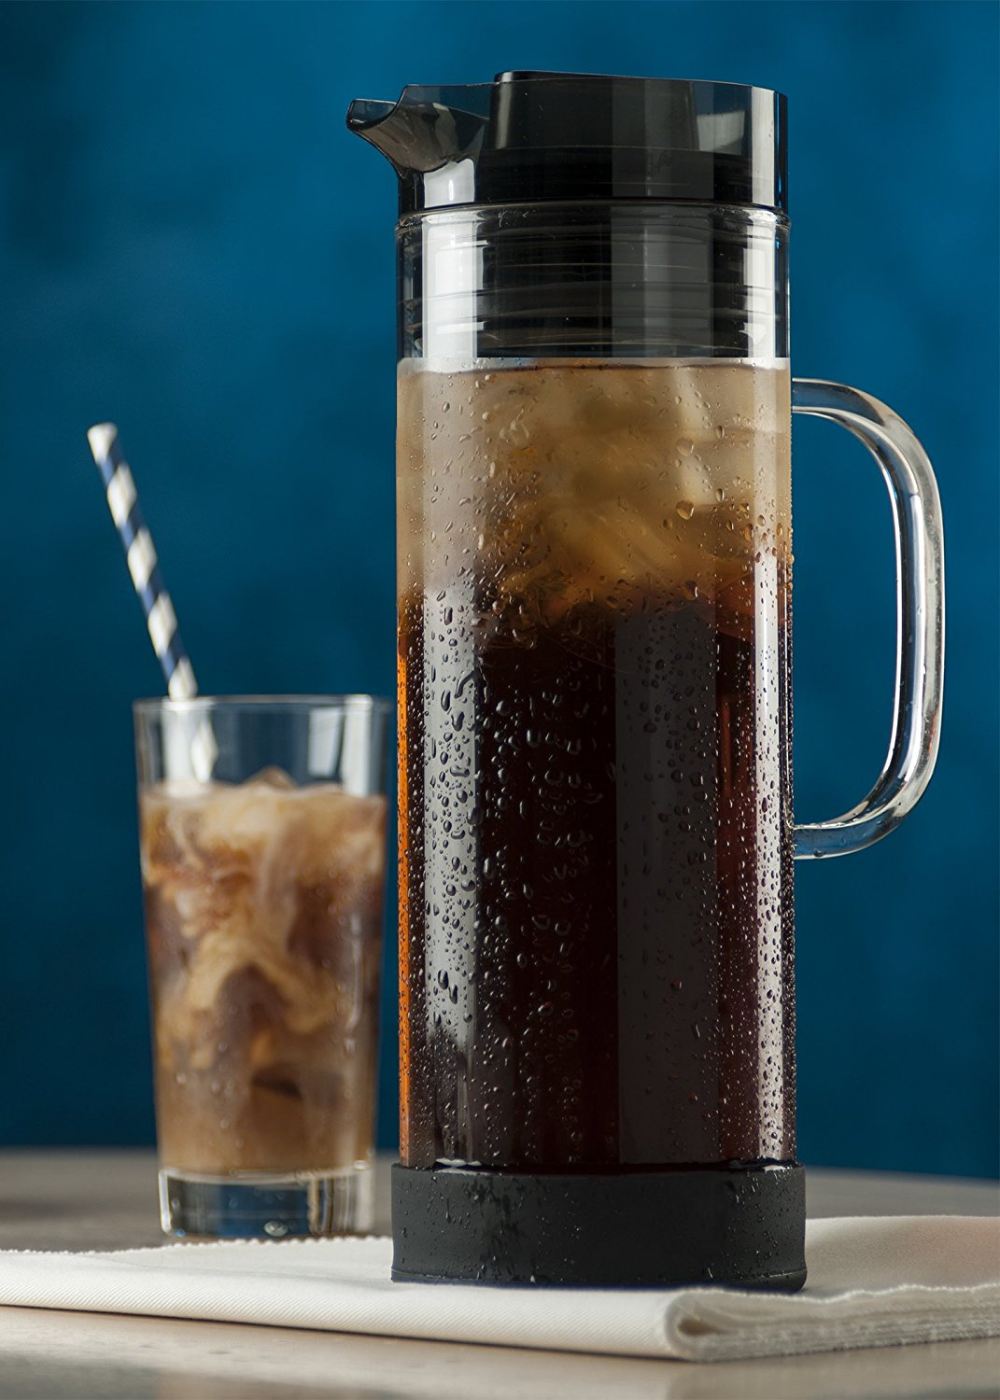 Primula Cold Brew Glass Coffee Maker Coffee maker, Cold